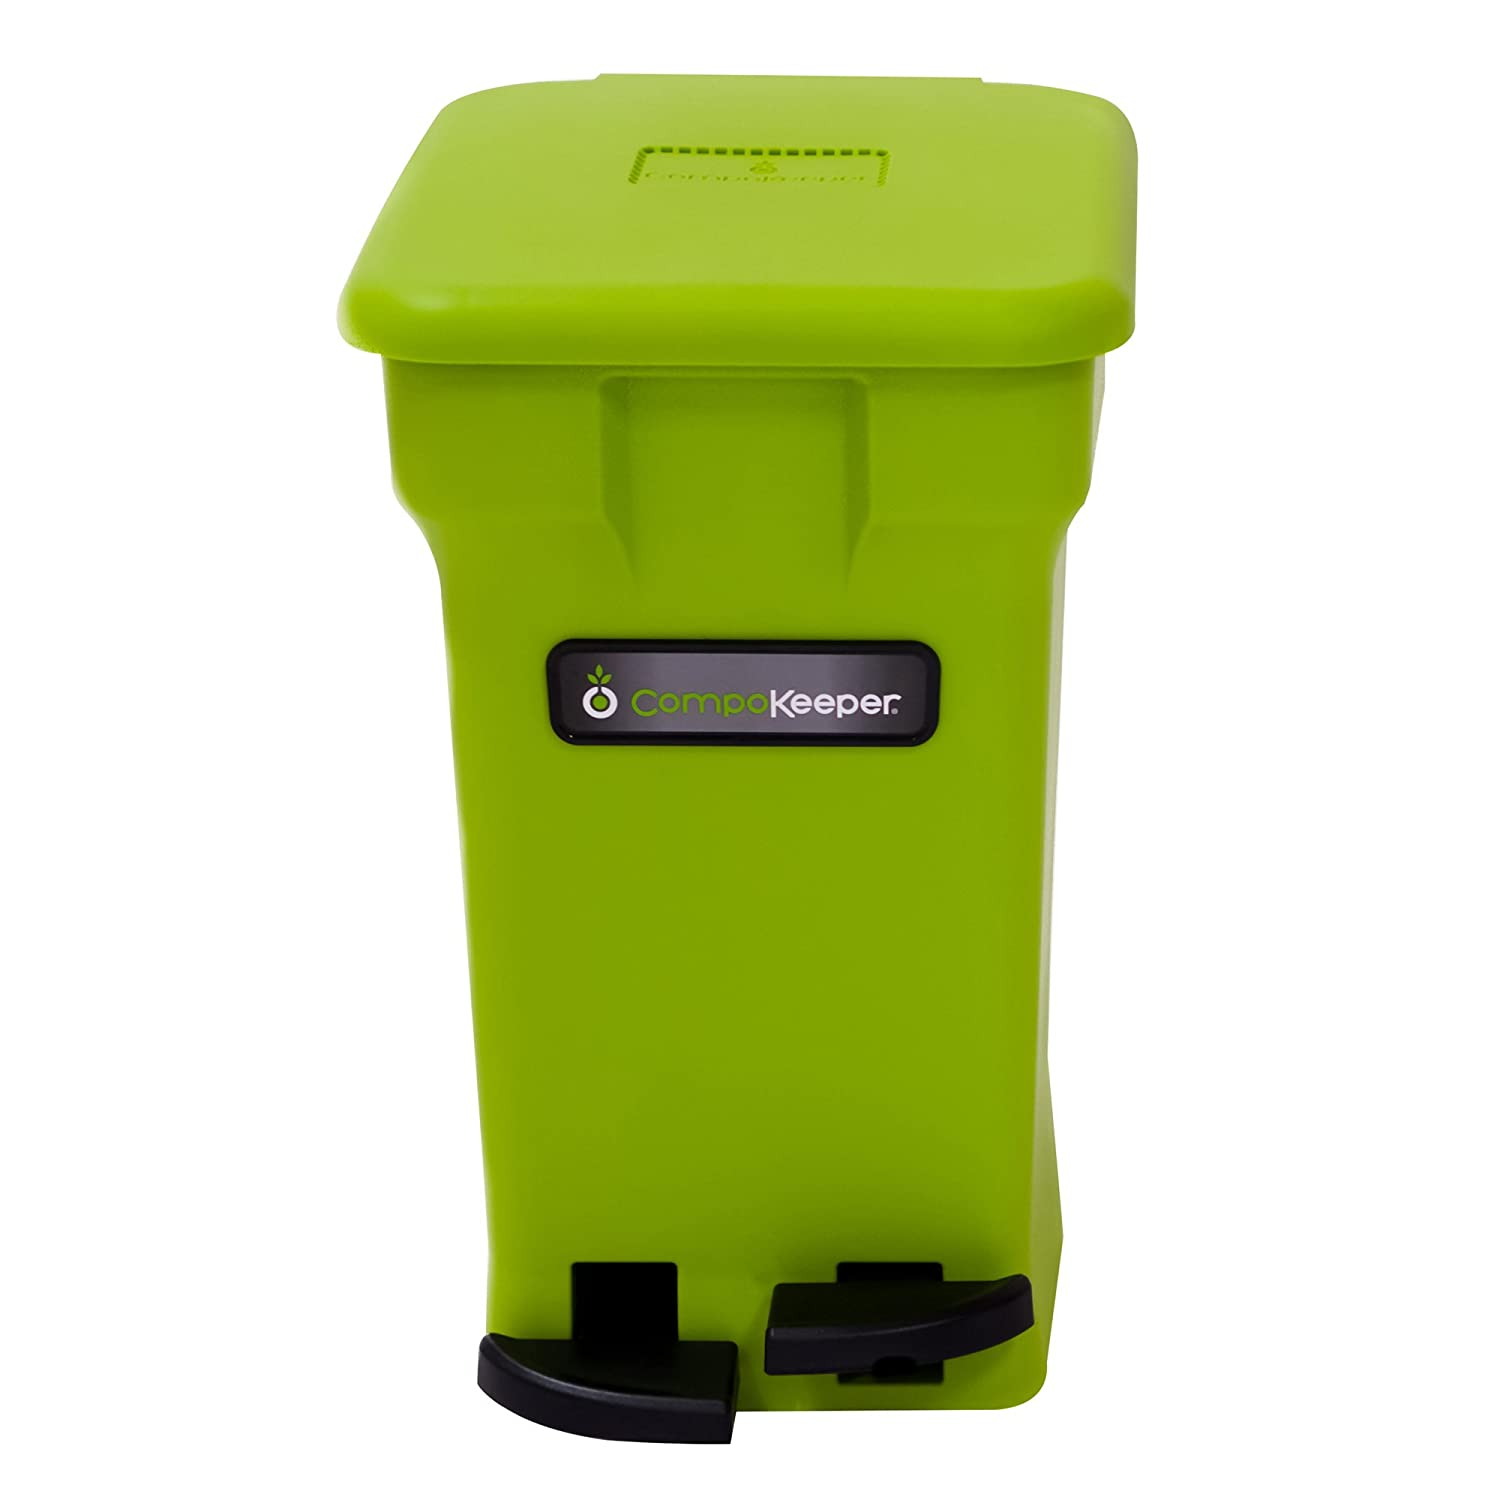 Delicieux Amazon.com: CompoKeeper Kitchen Compost Bin, Green, 6 Gallon: Kitchen U0026  Dining